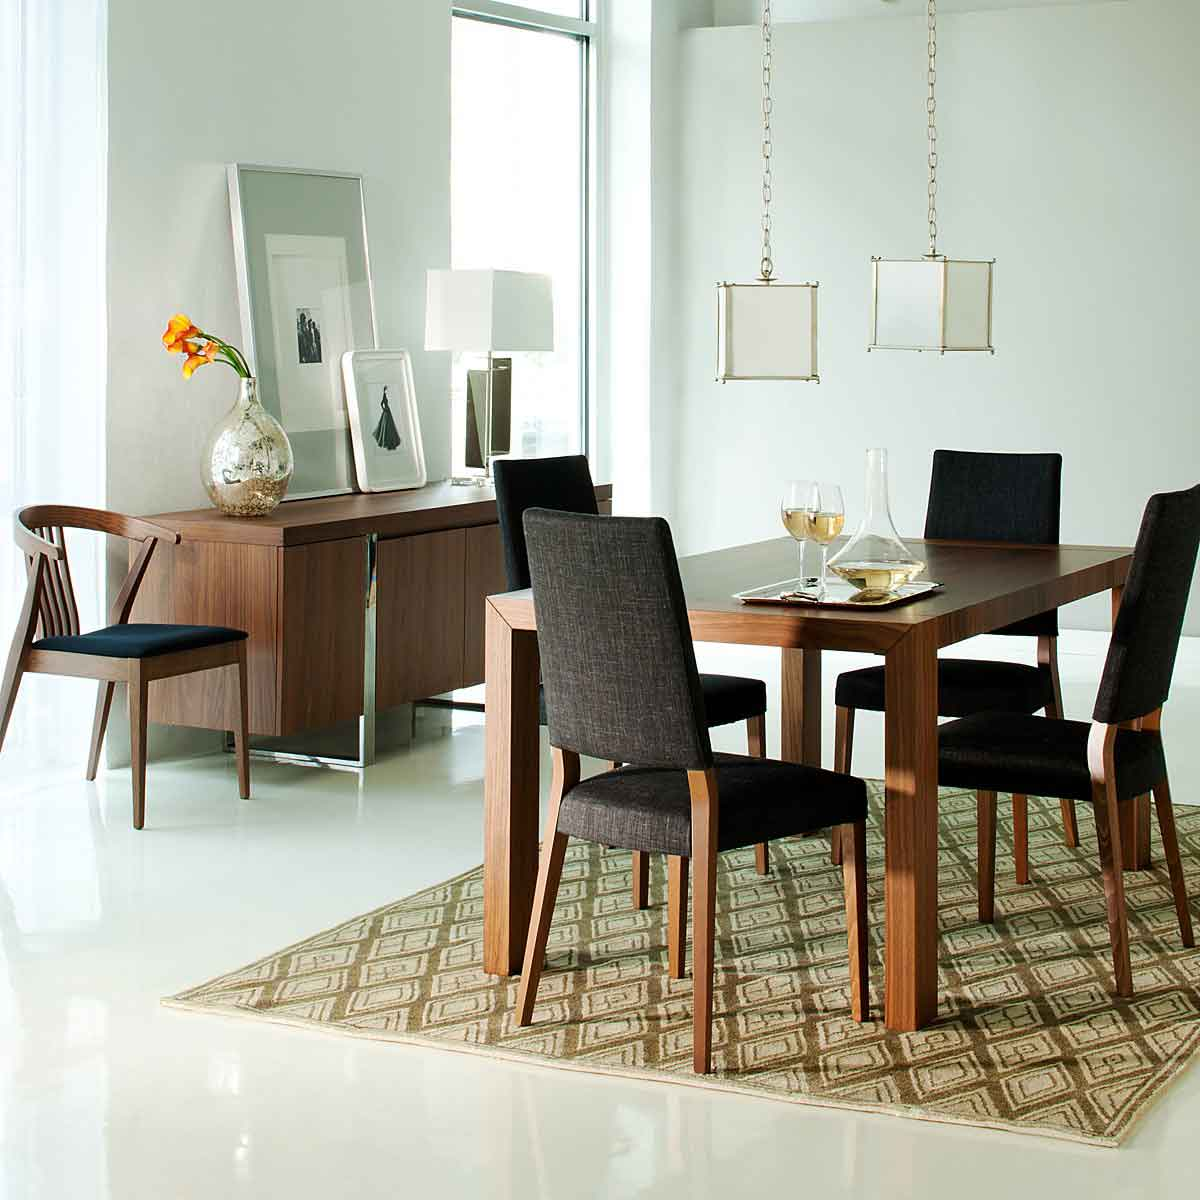 Modern dining room design ideas - Simple Modern Dining Room Interior Design Ideas